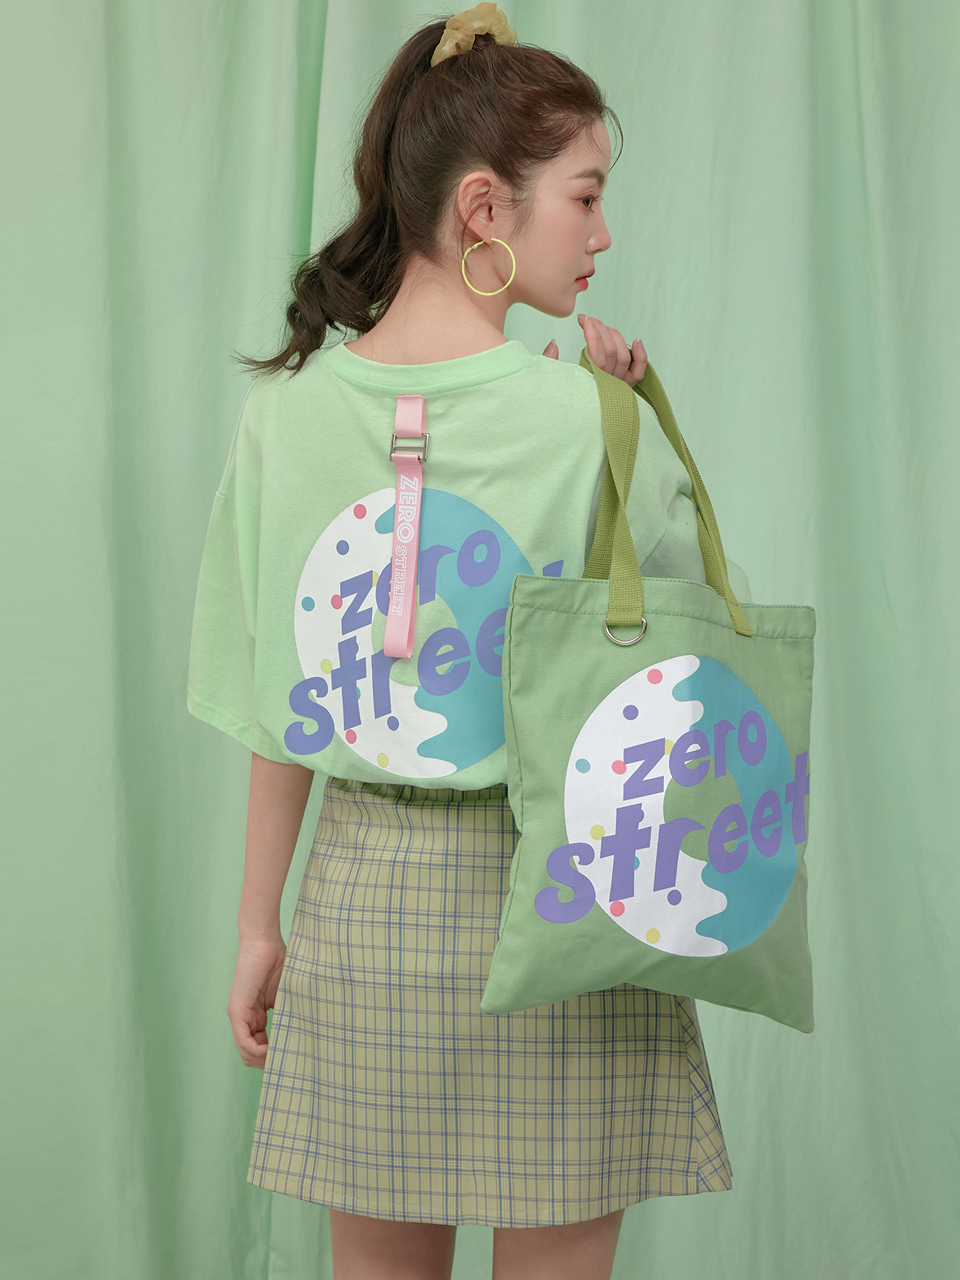 [NEW 30%]백도넛 스트랩 반팔티셔츠 BACK DONUT STRAP T-SHIRT / APPLE MINT